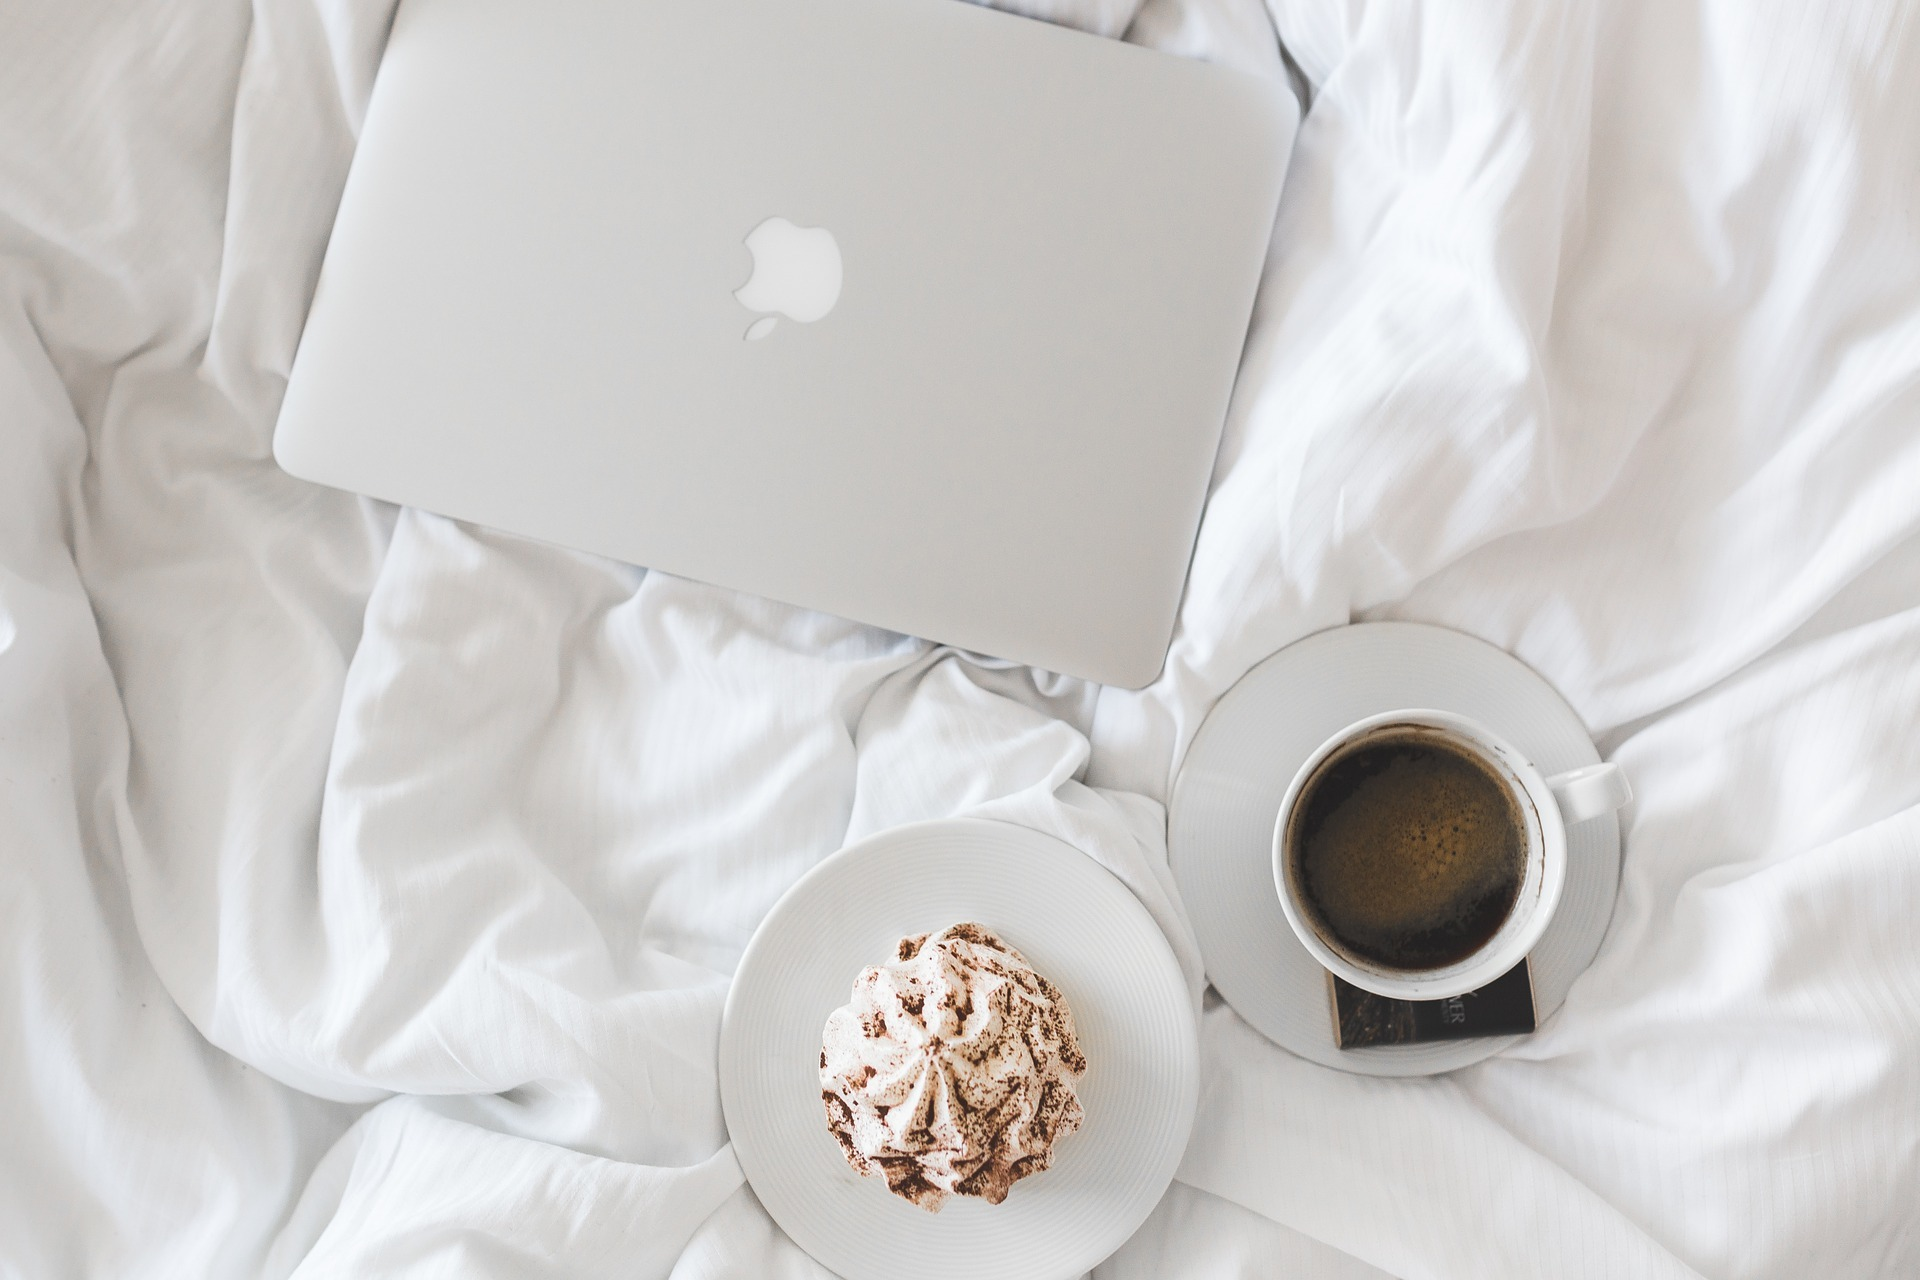 Laptop on bed with coffee and sweets